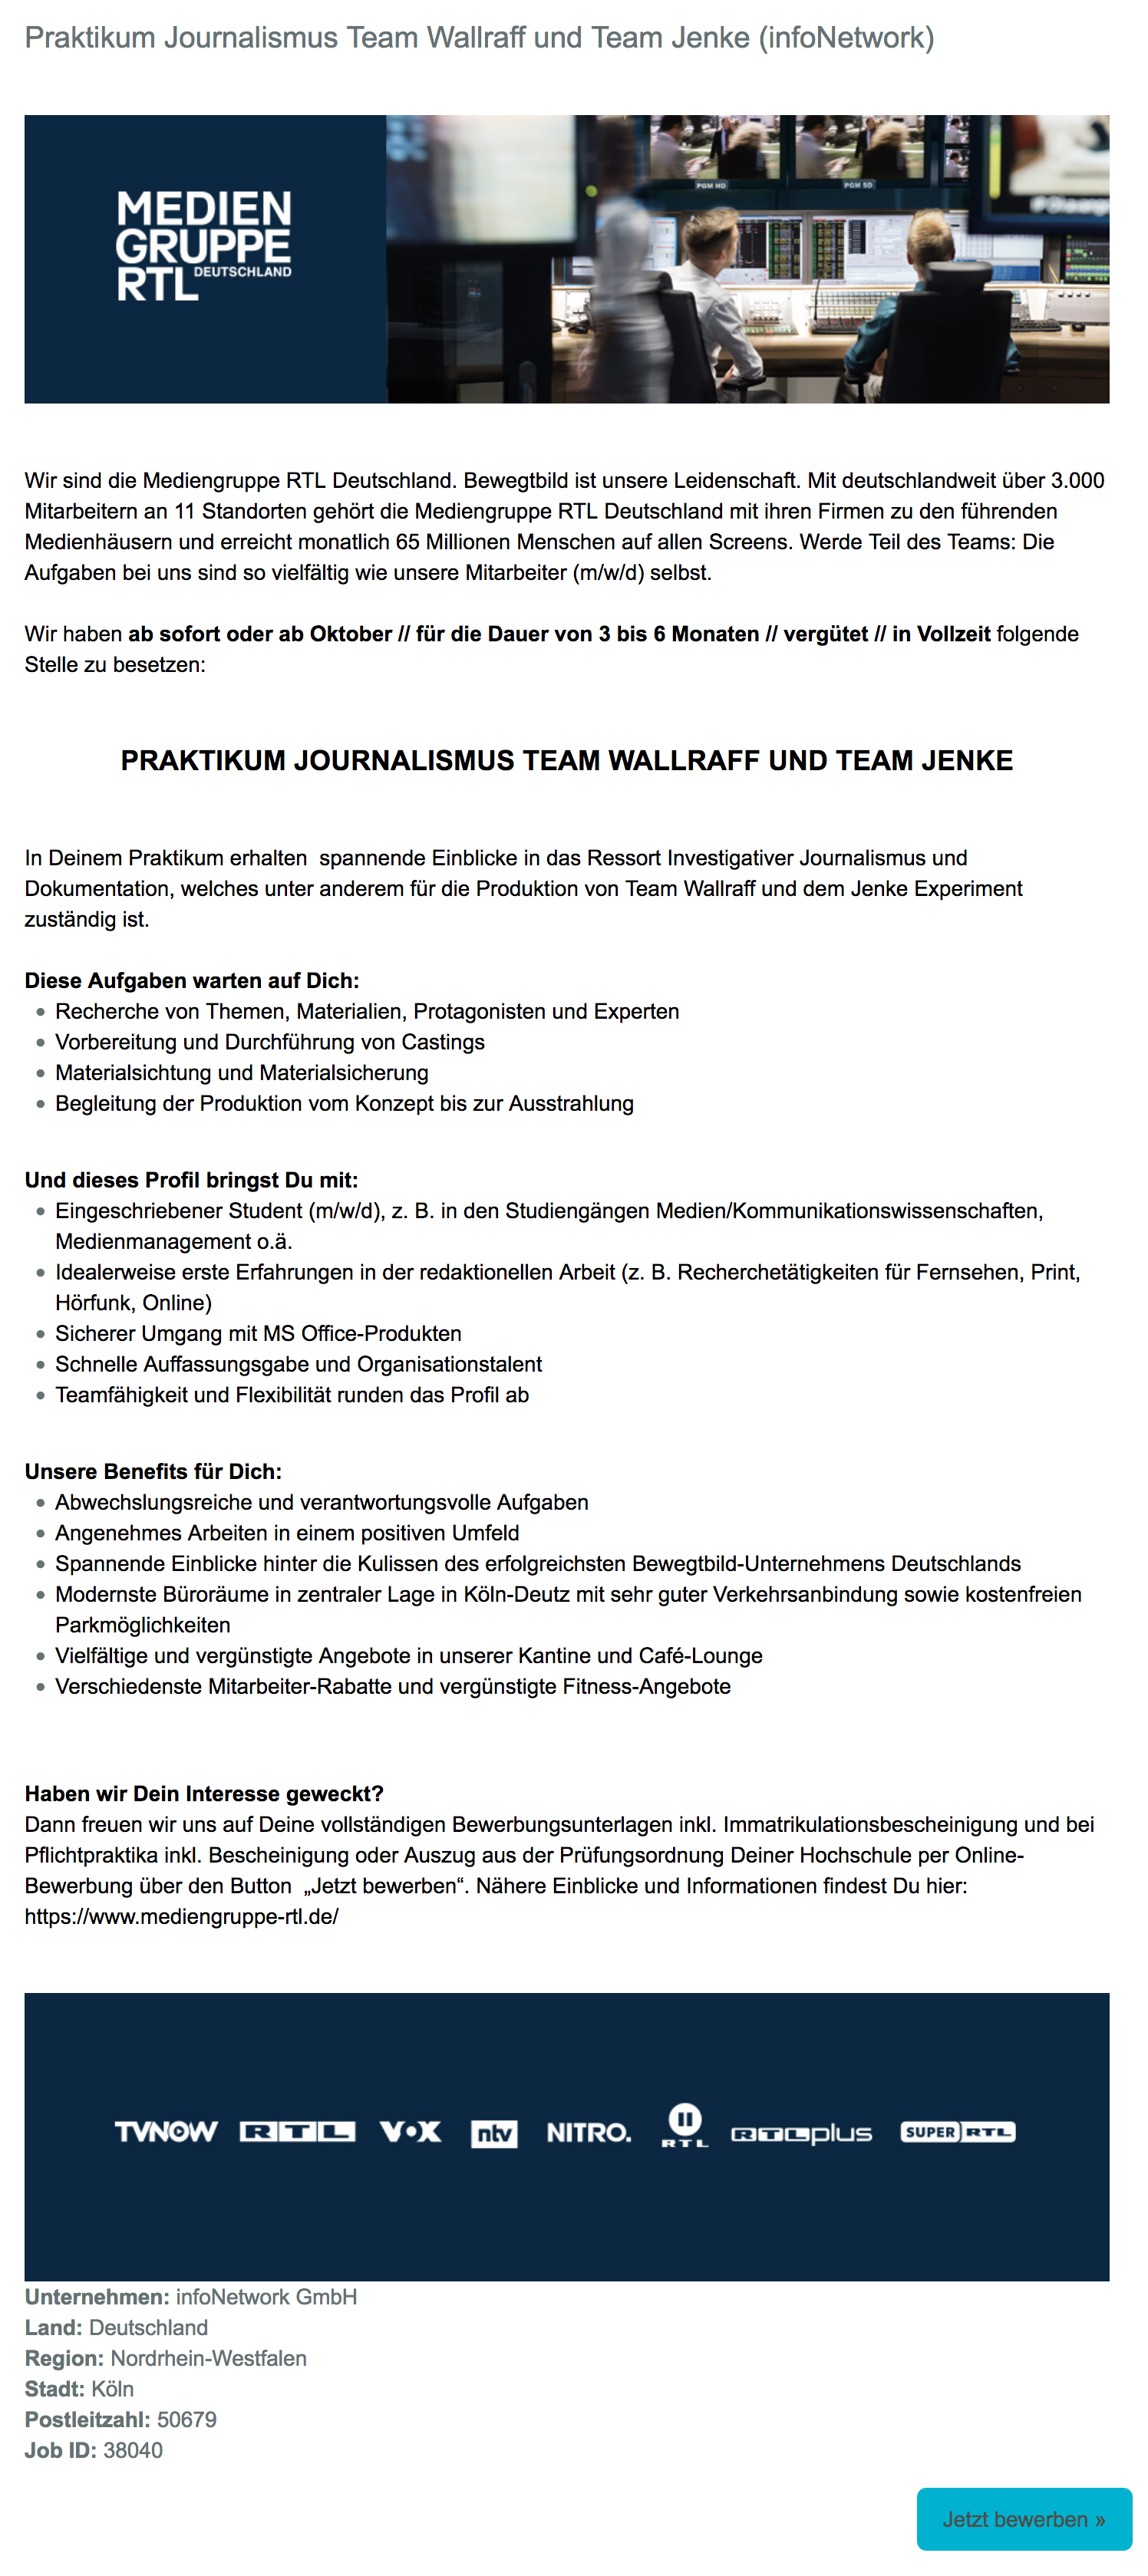 Praktikum Journalismus Team Wallraff und Team Jenke (infoNetwork)